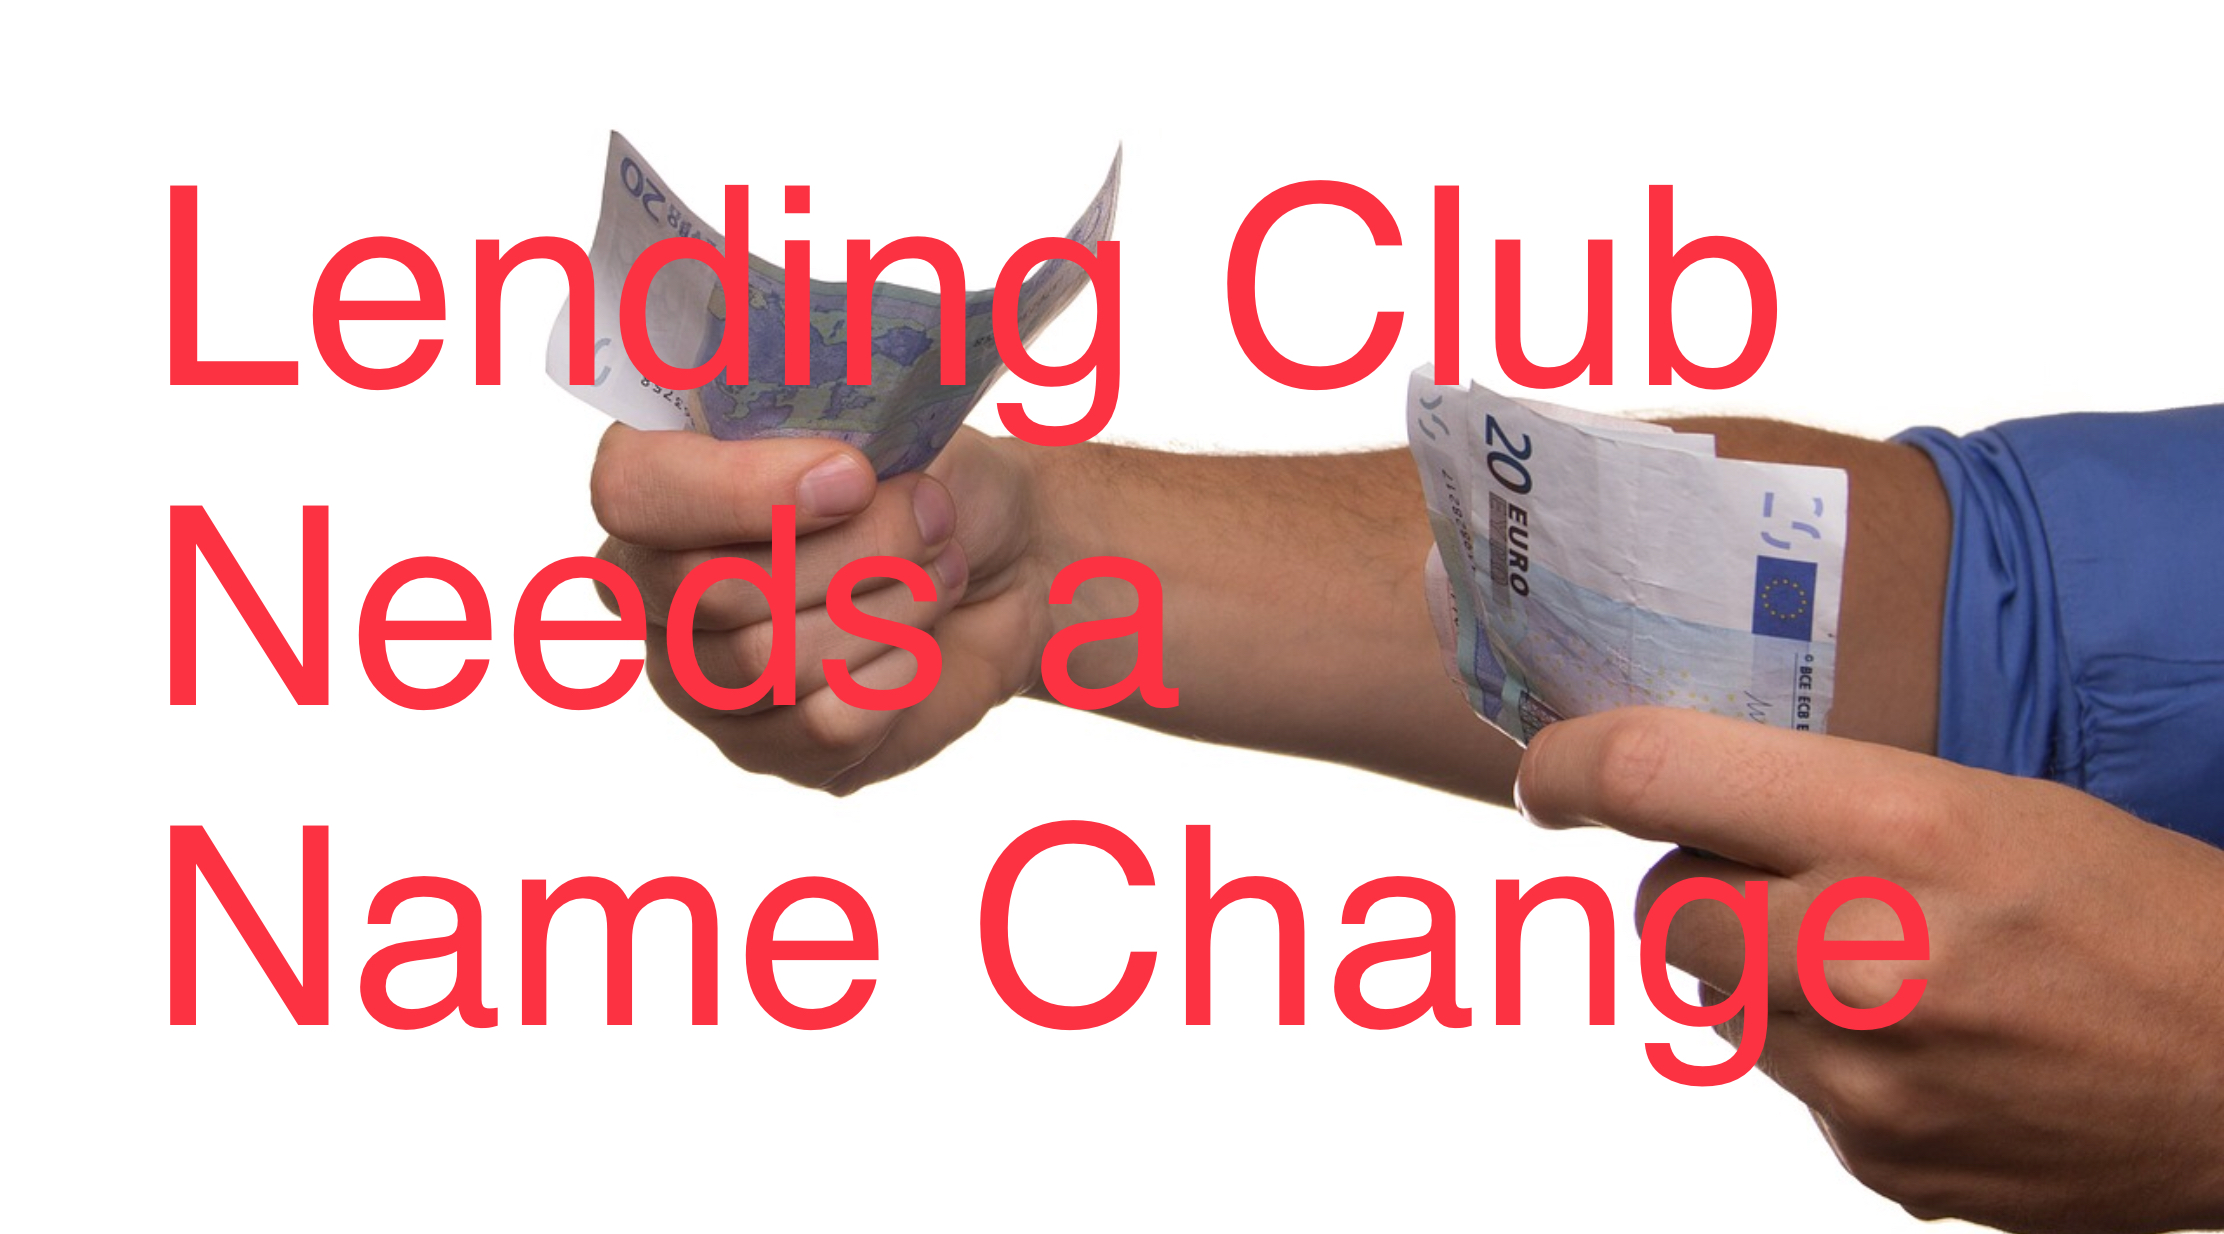 LendingClub needs a name change